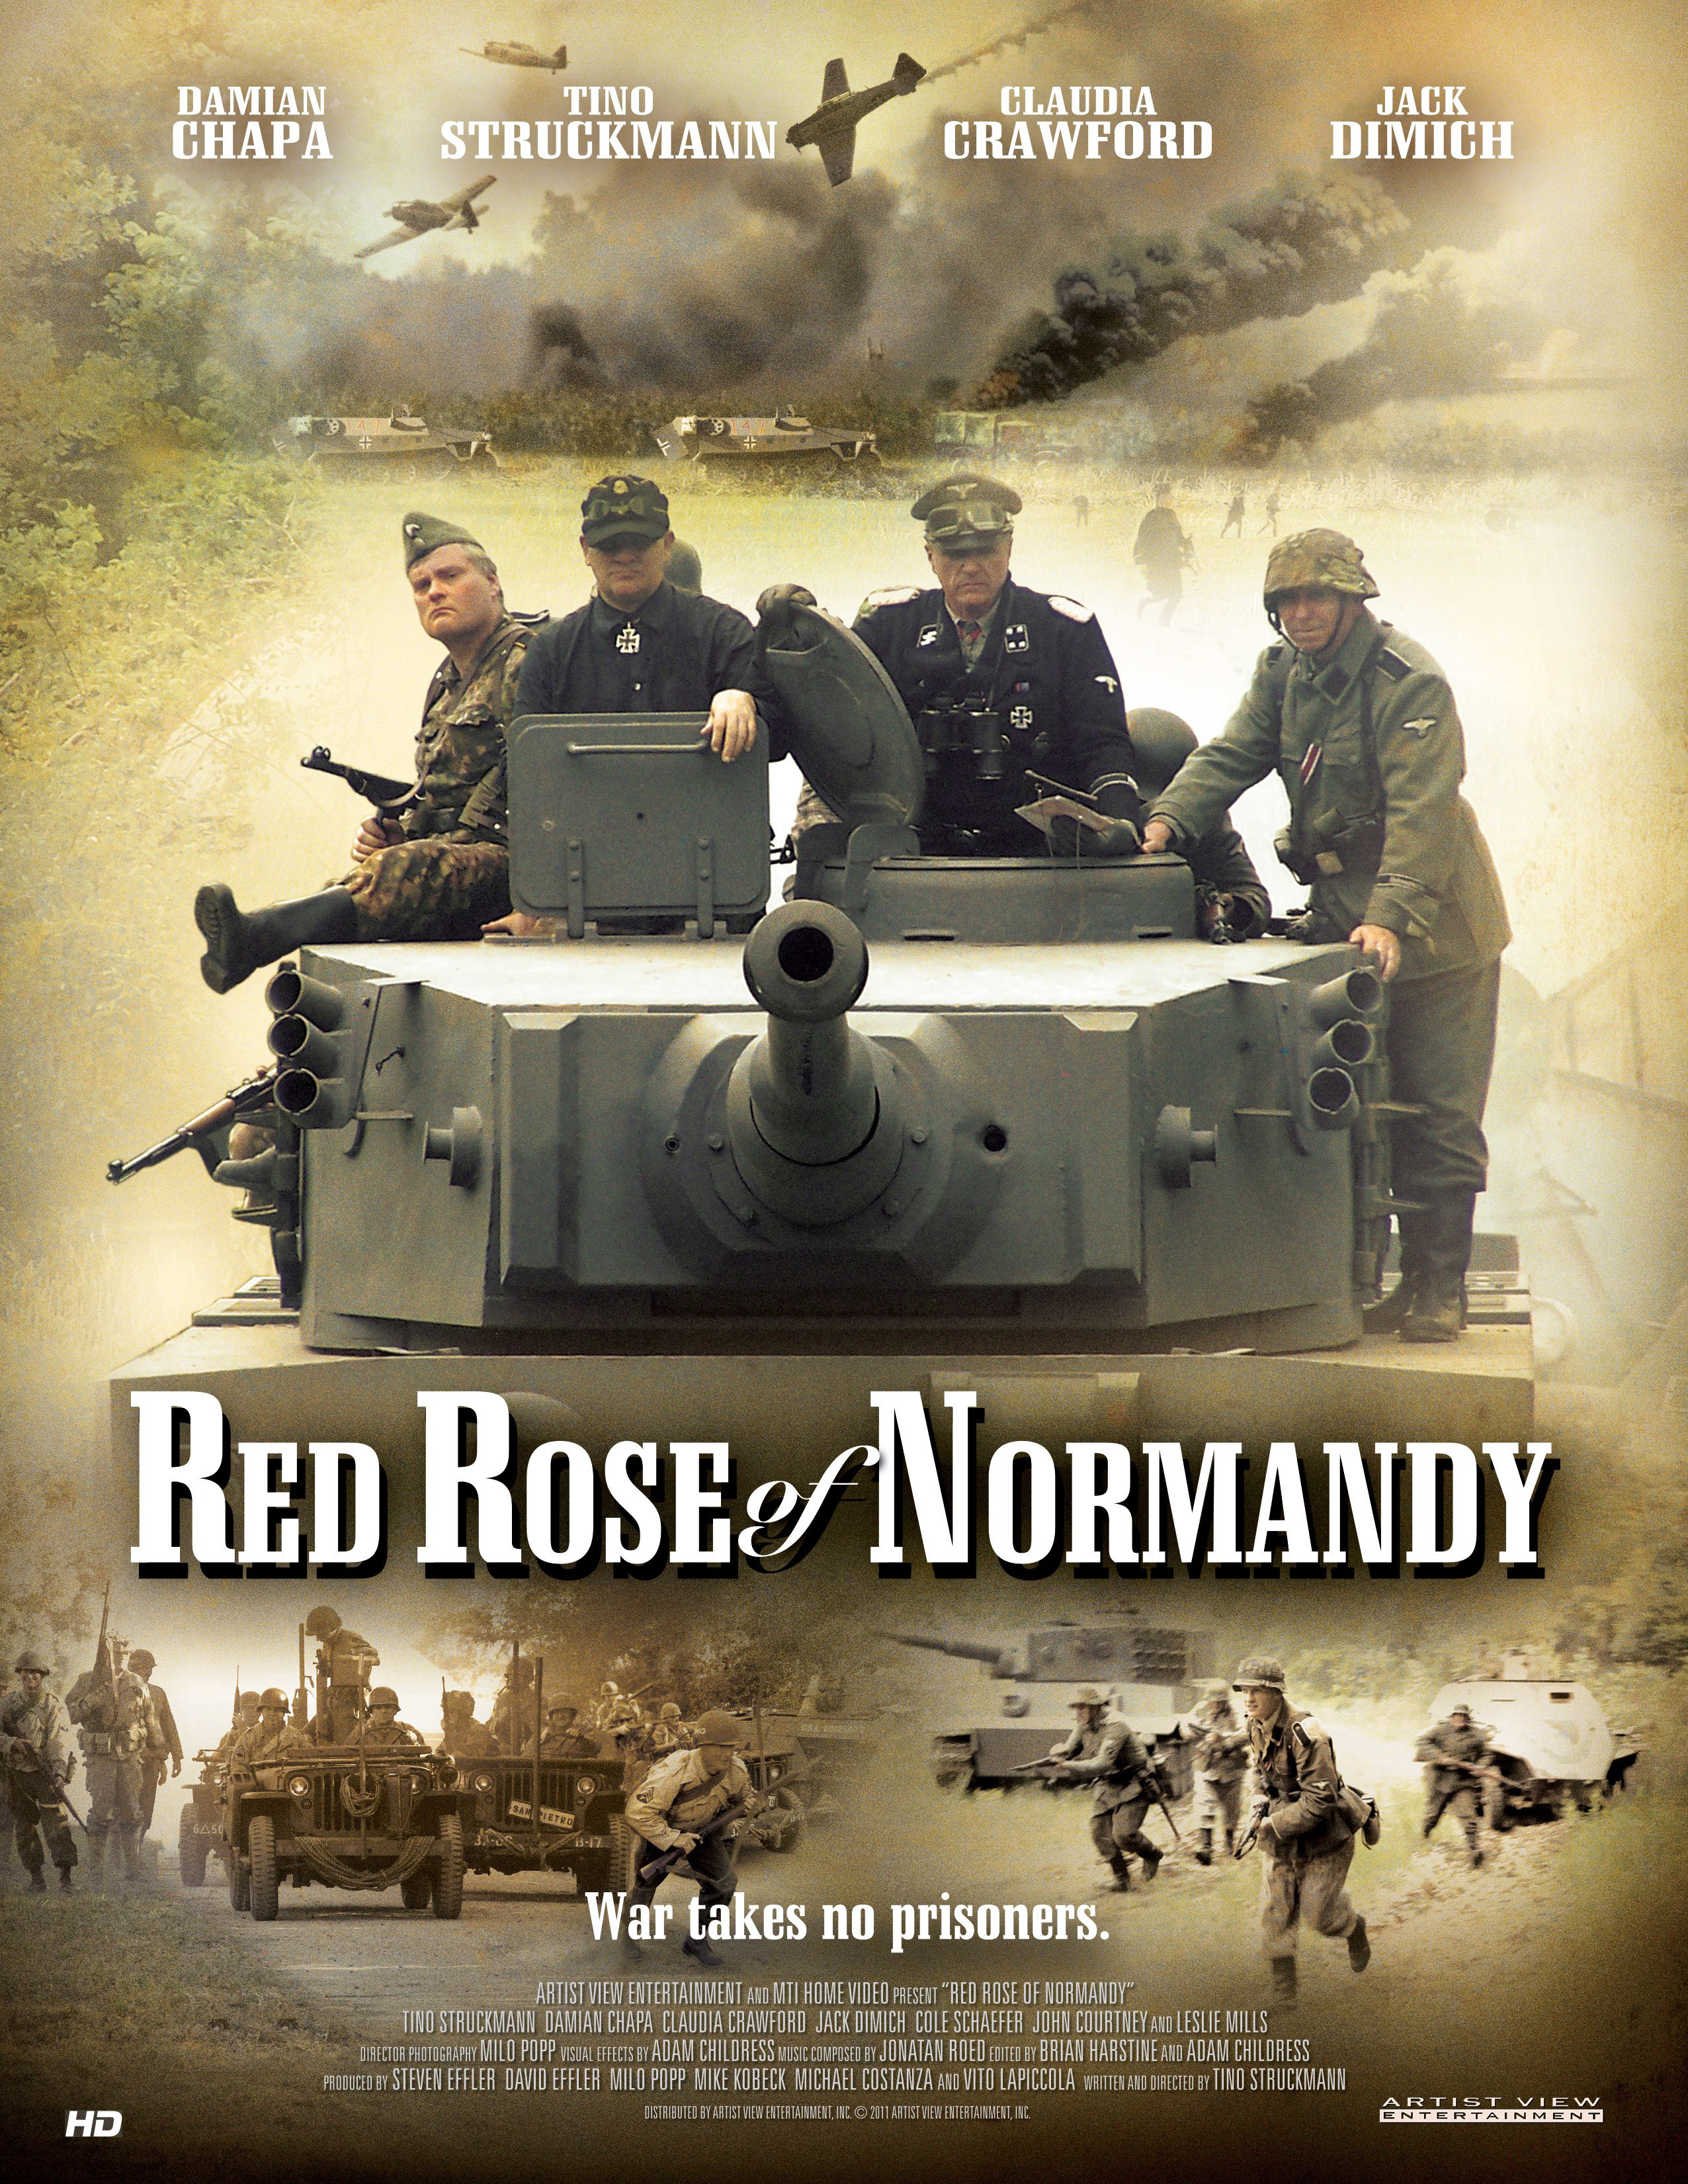 Red Rose of Normandy (Video 2011) - IMDbPro